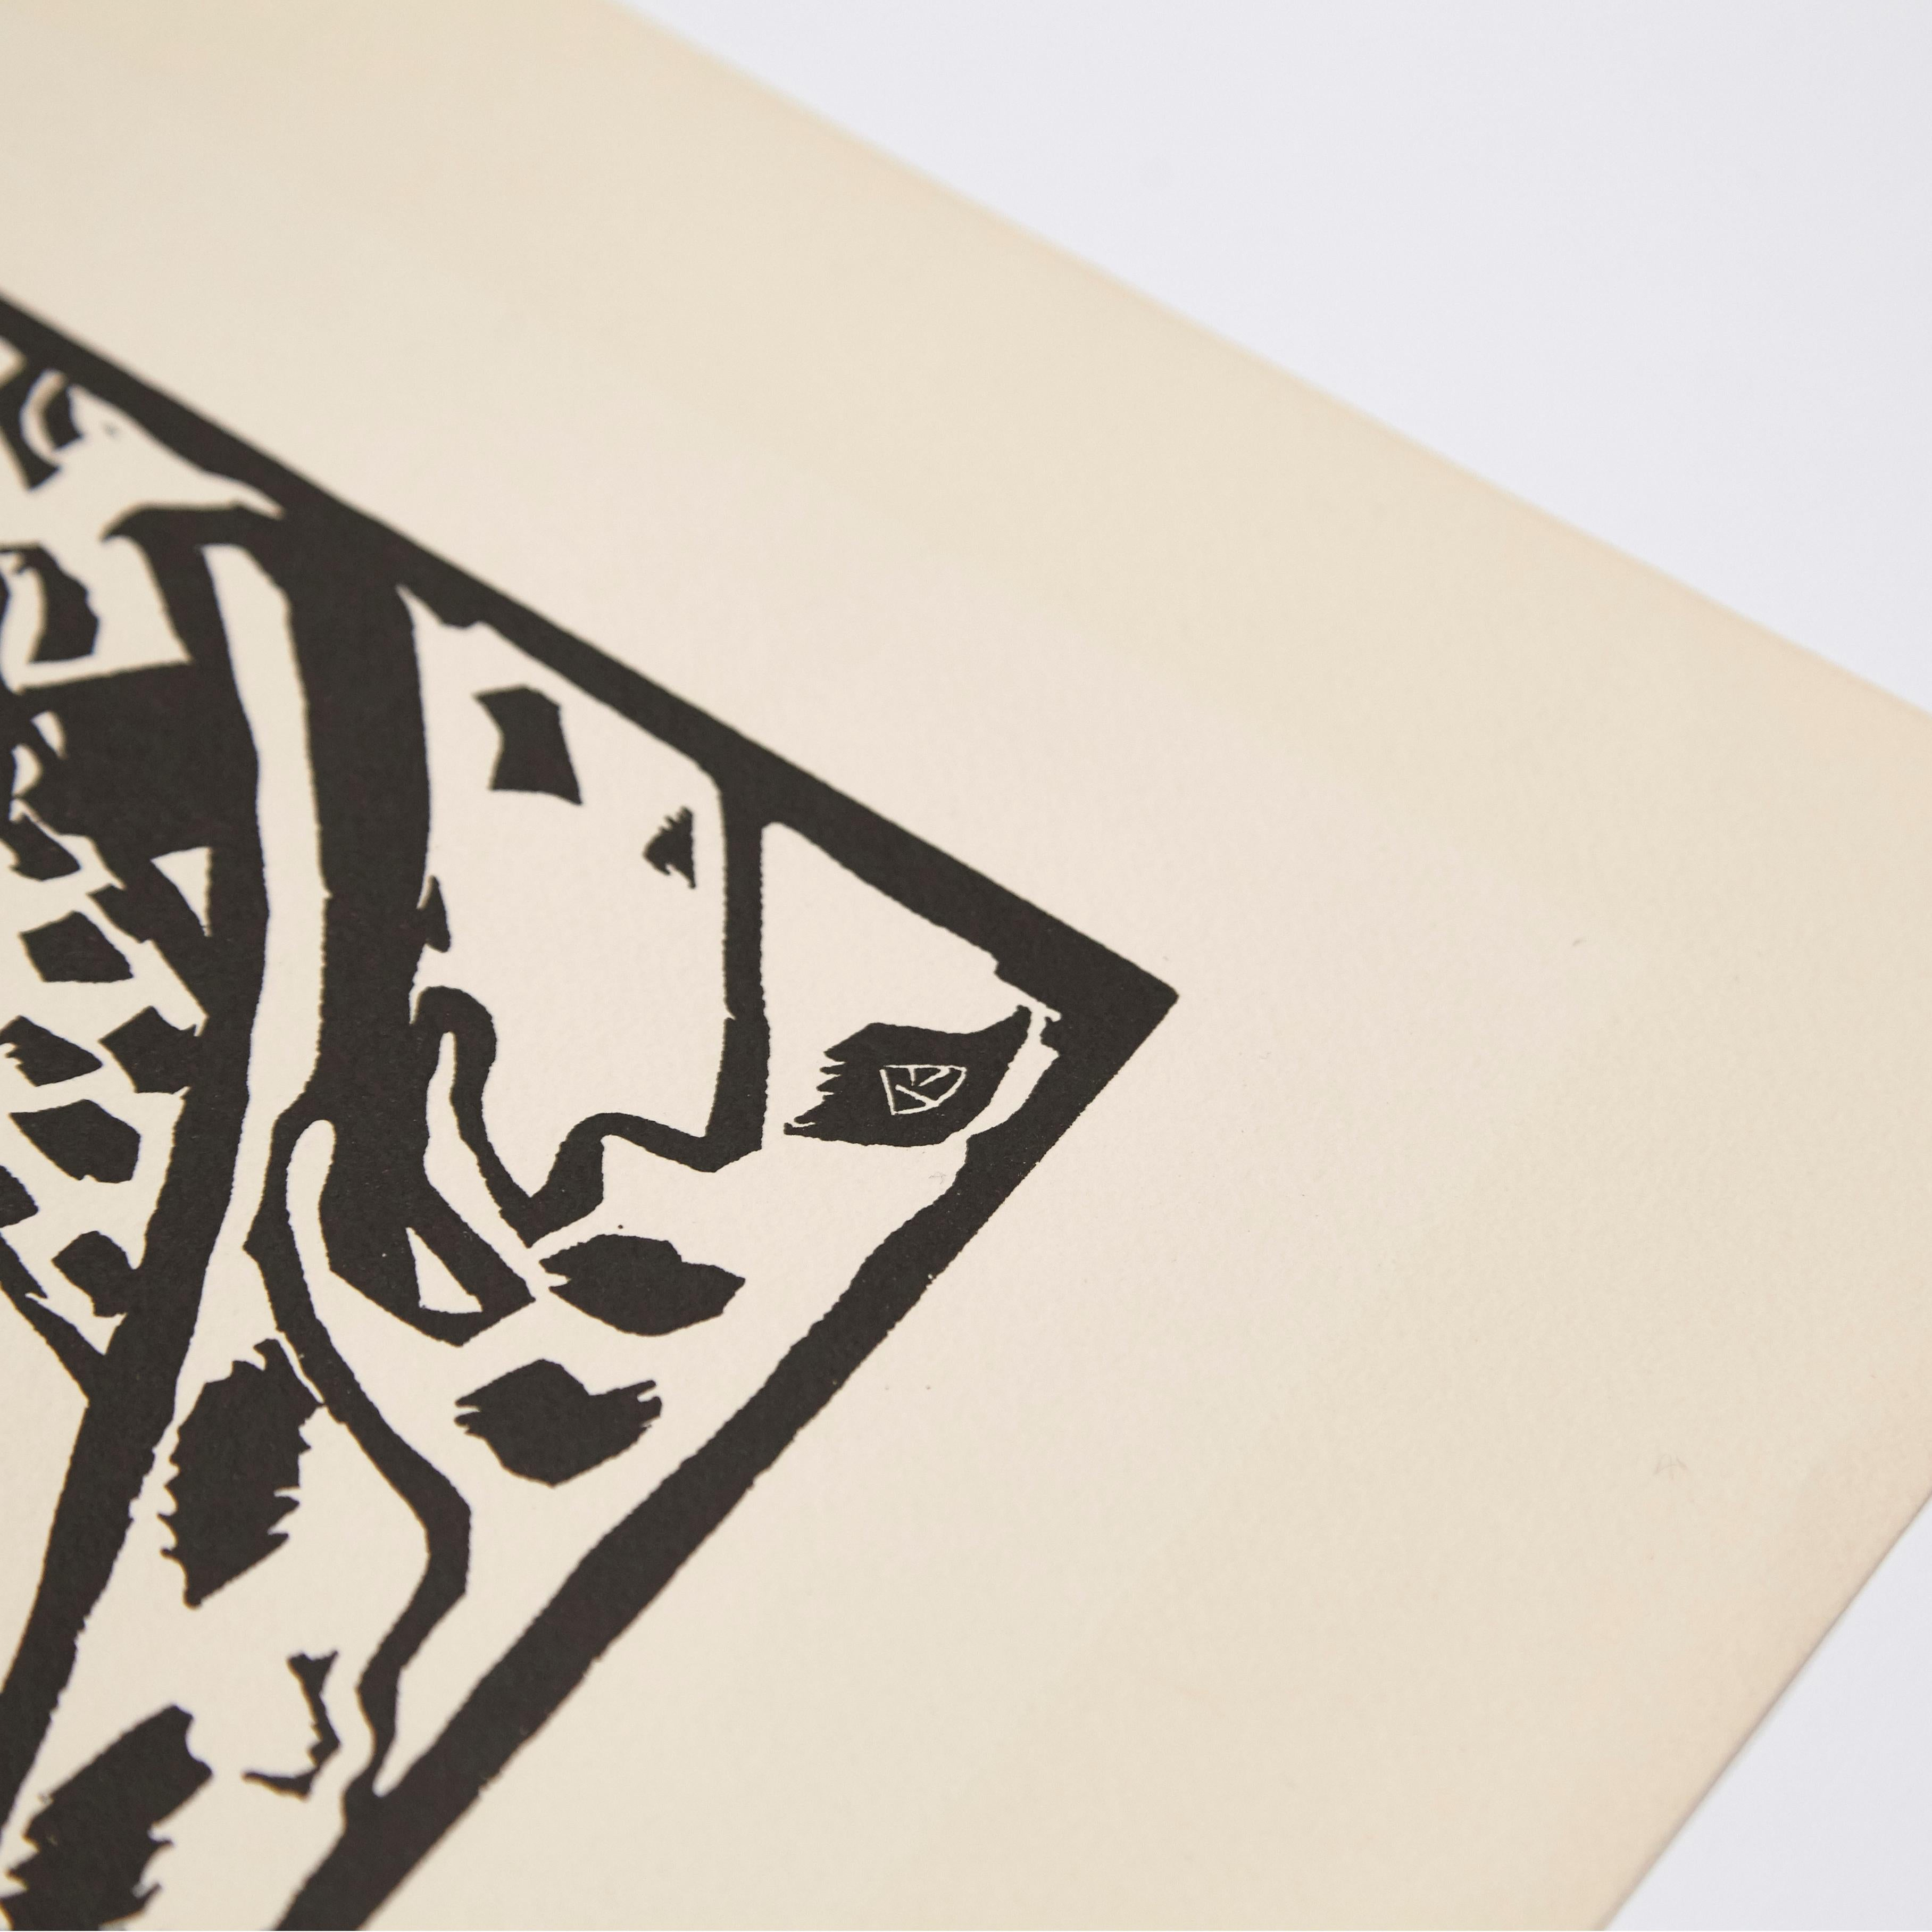 Wasilly Kandinsky, Wood Engraving for